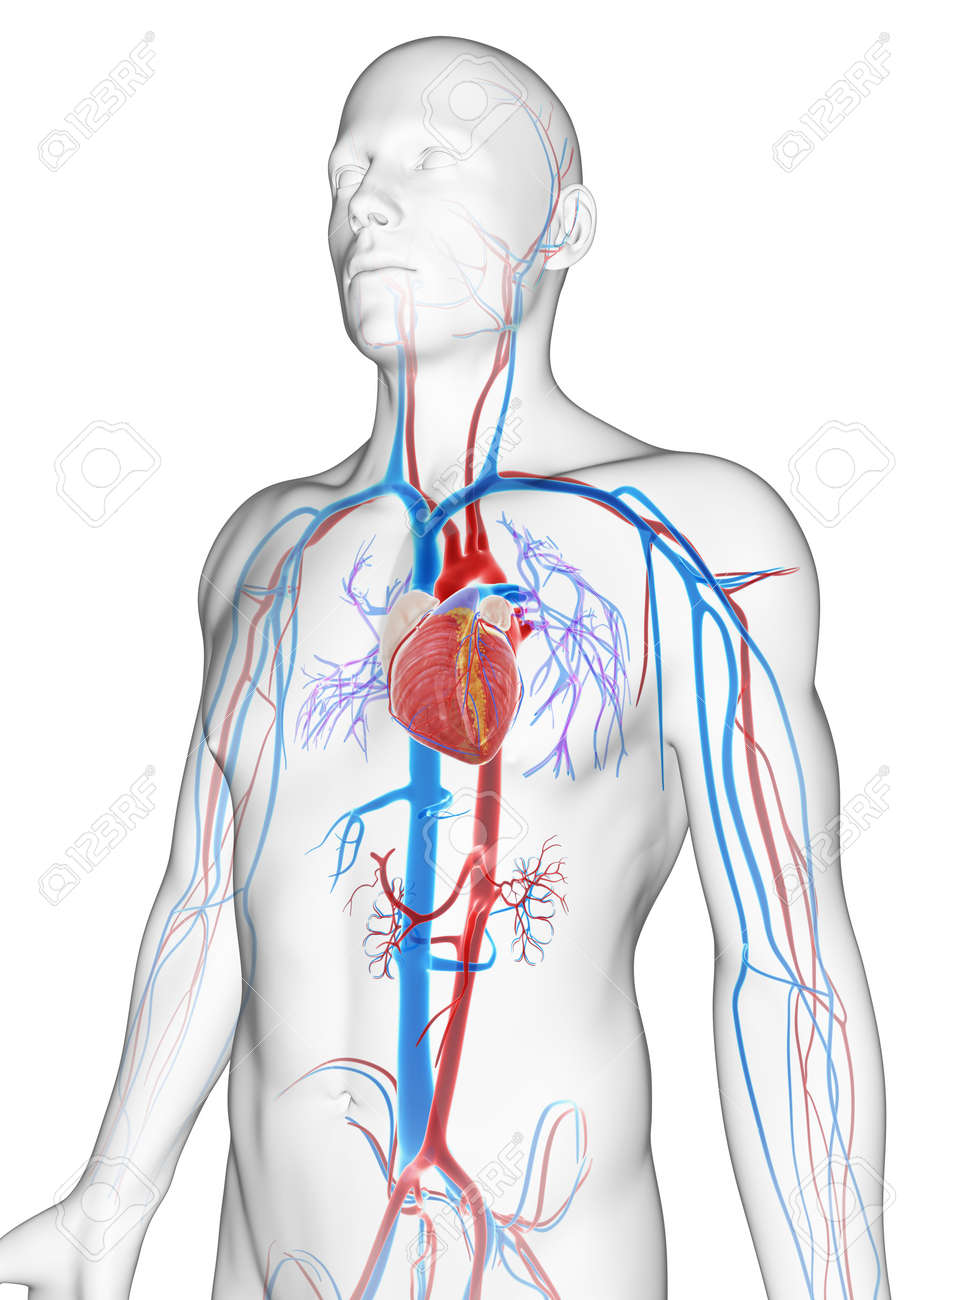 3d Rendered Illustration Of The Male Vascular System Stock Photo ...